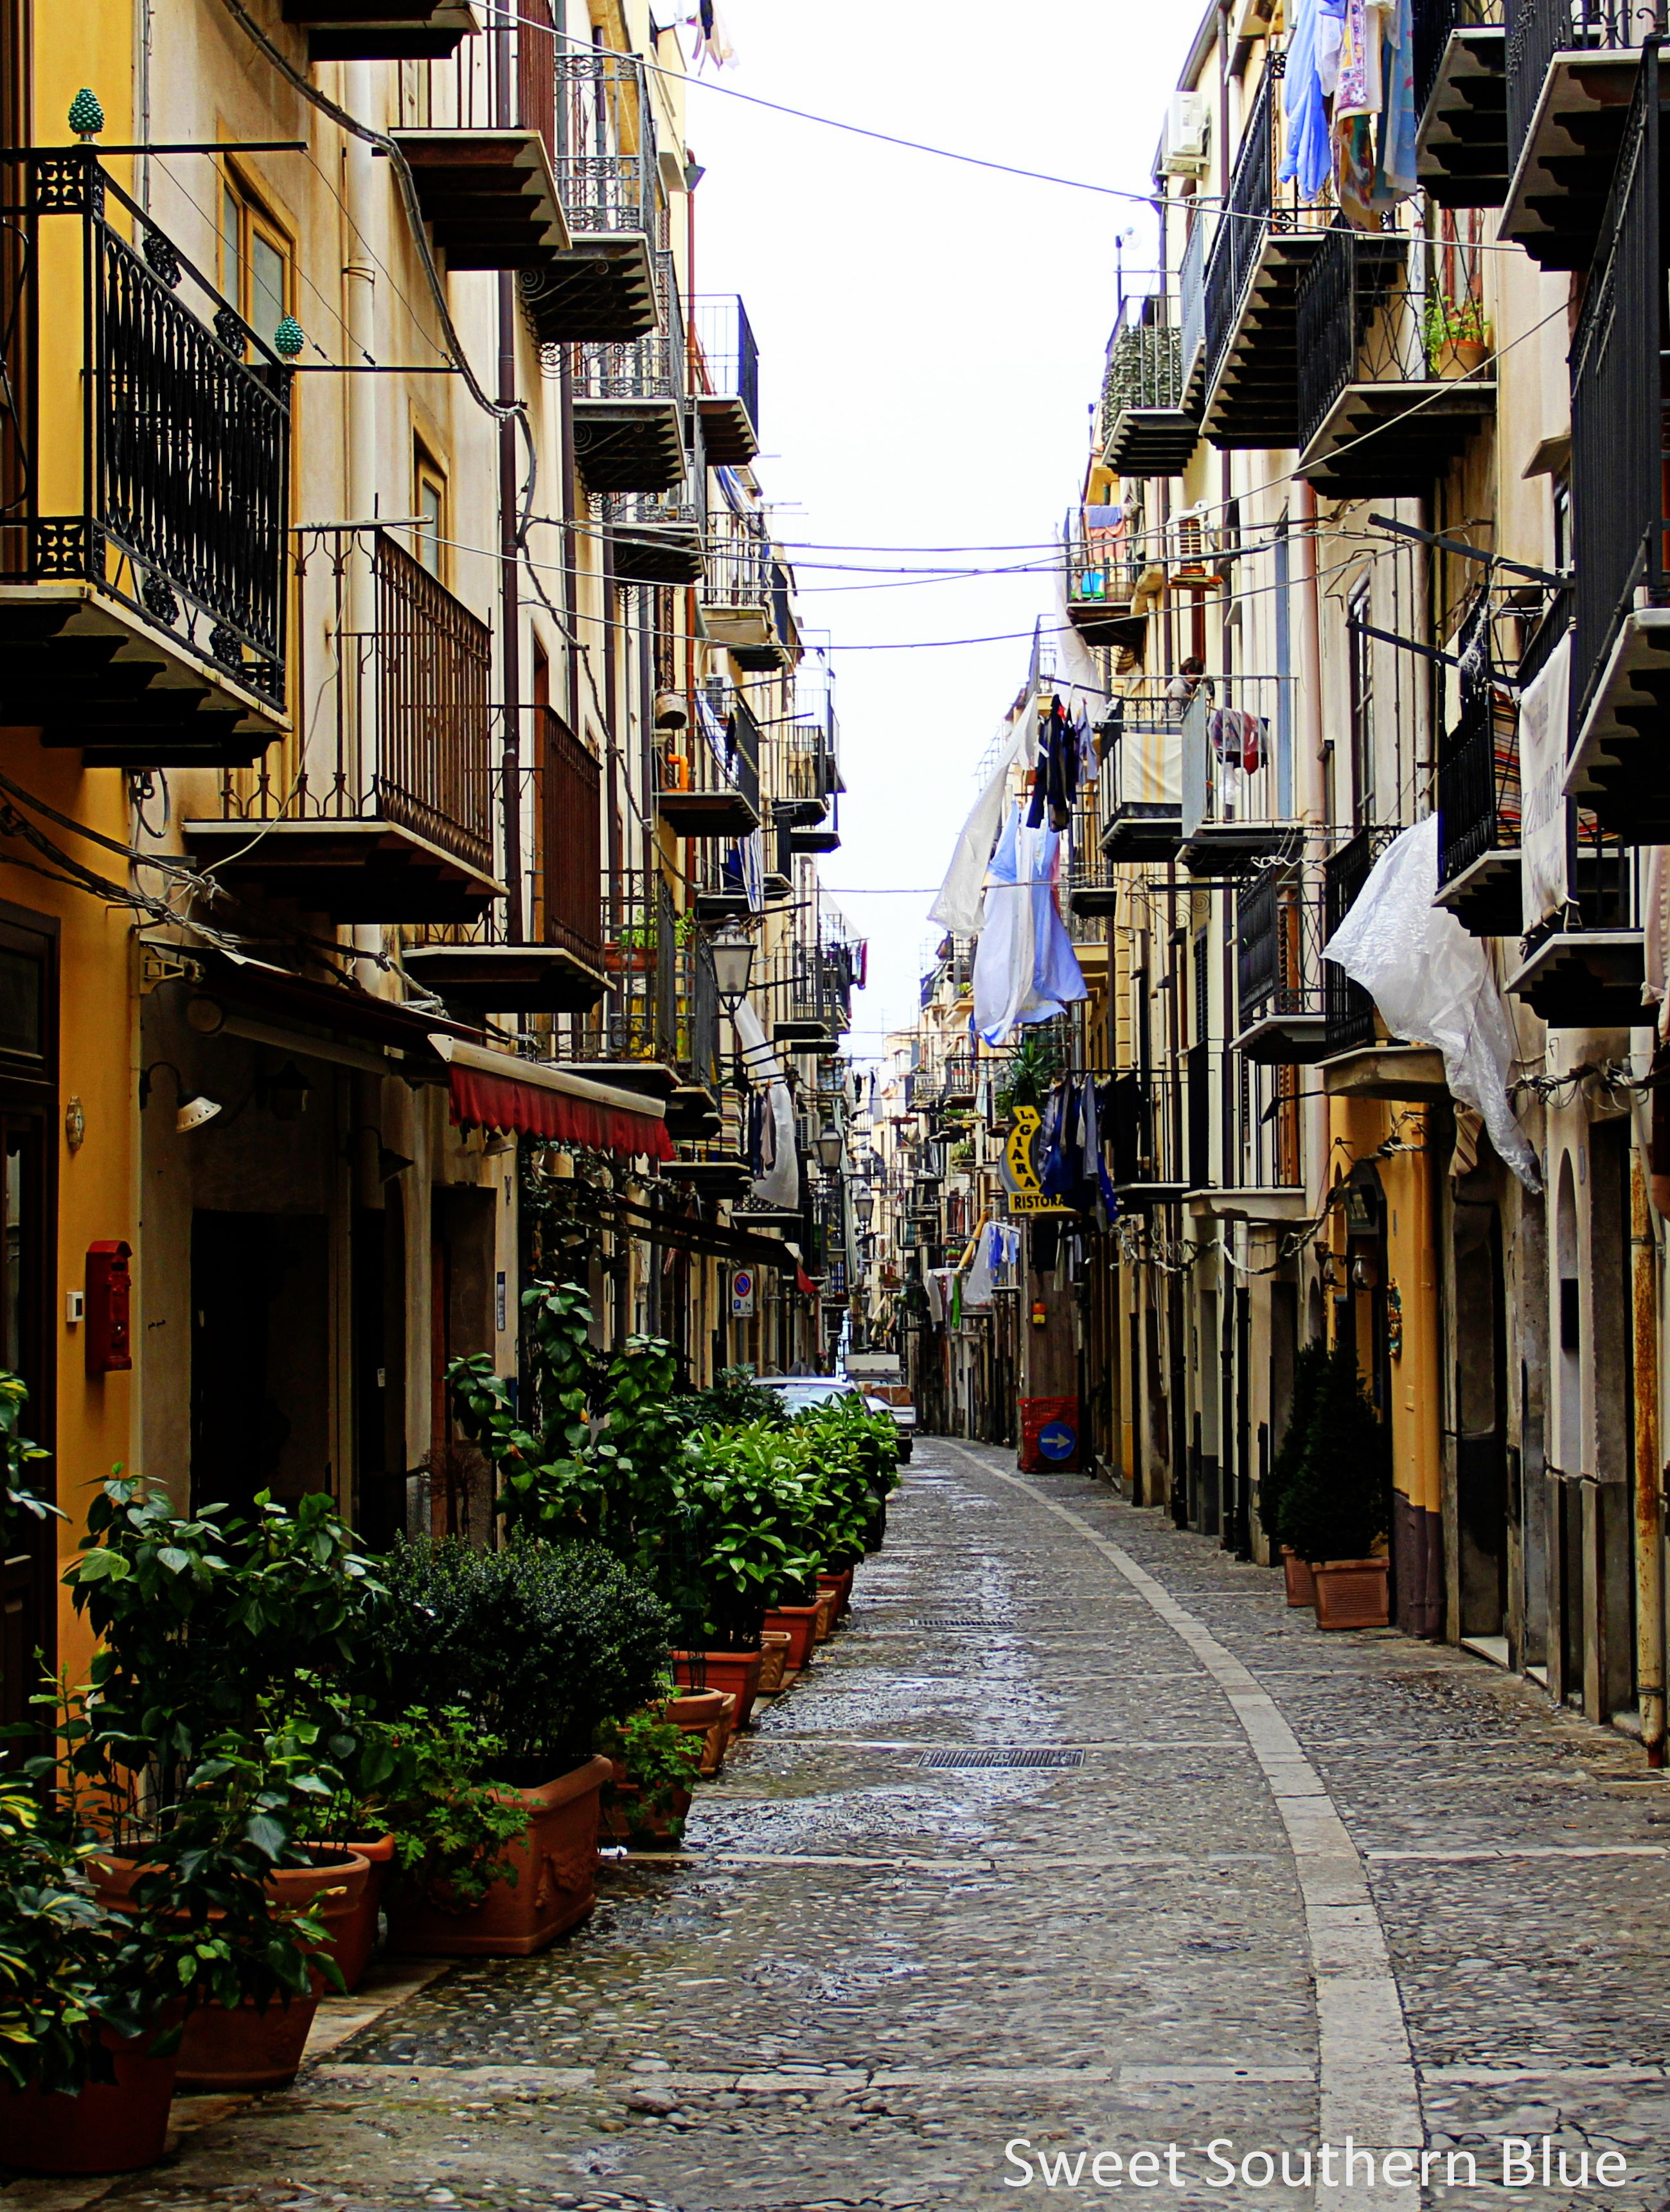 Cefalu, Sicily, Italy ~ We walked the narrow cobblestone streets of Cefalu down to the sea.